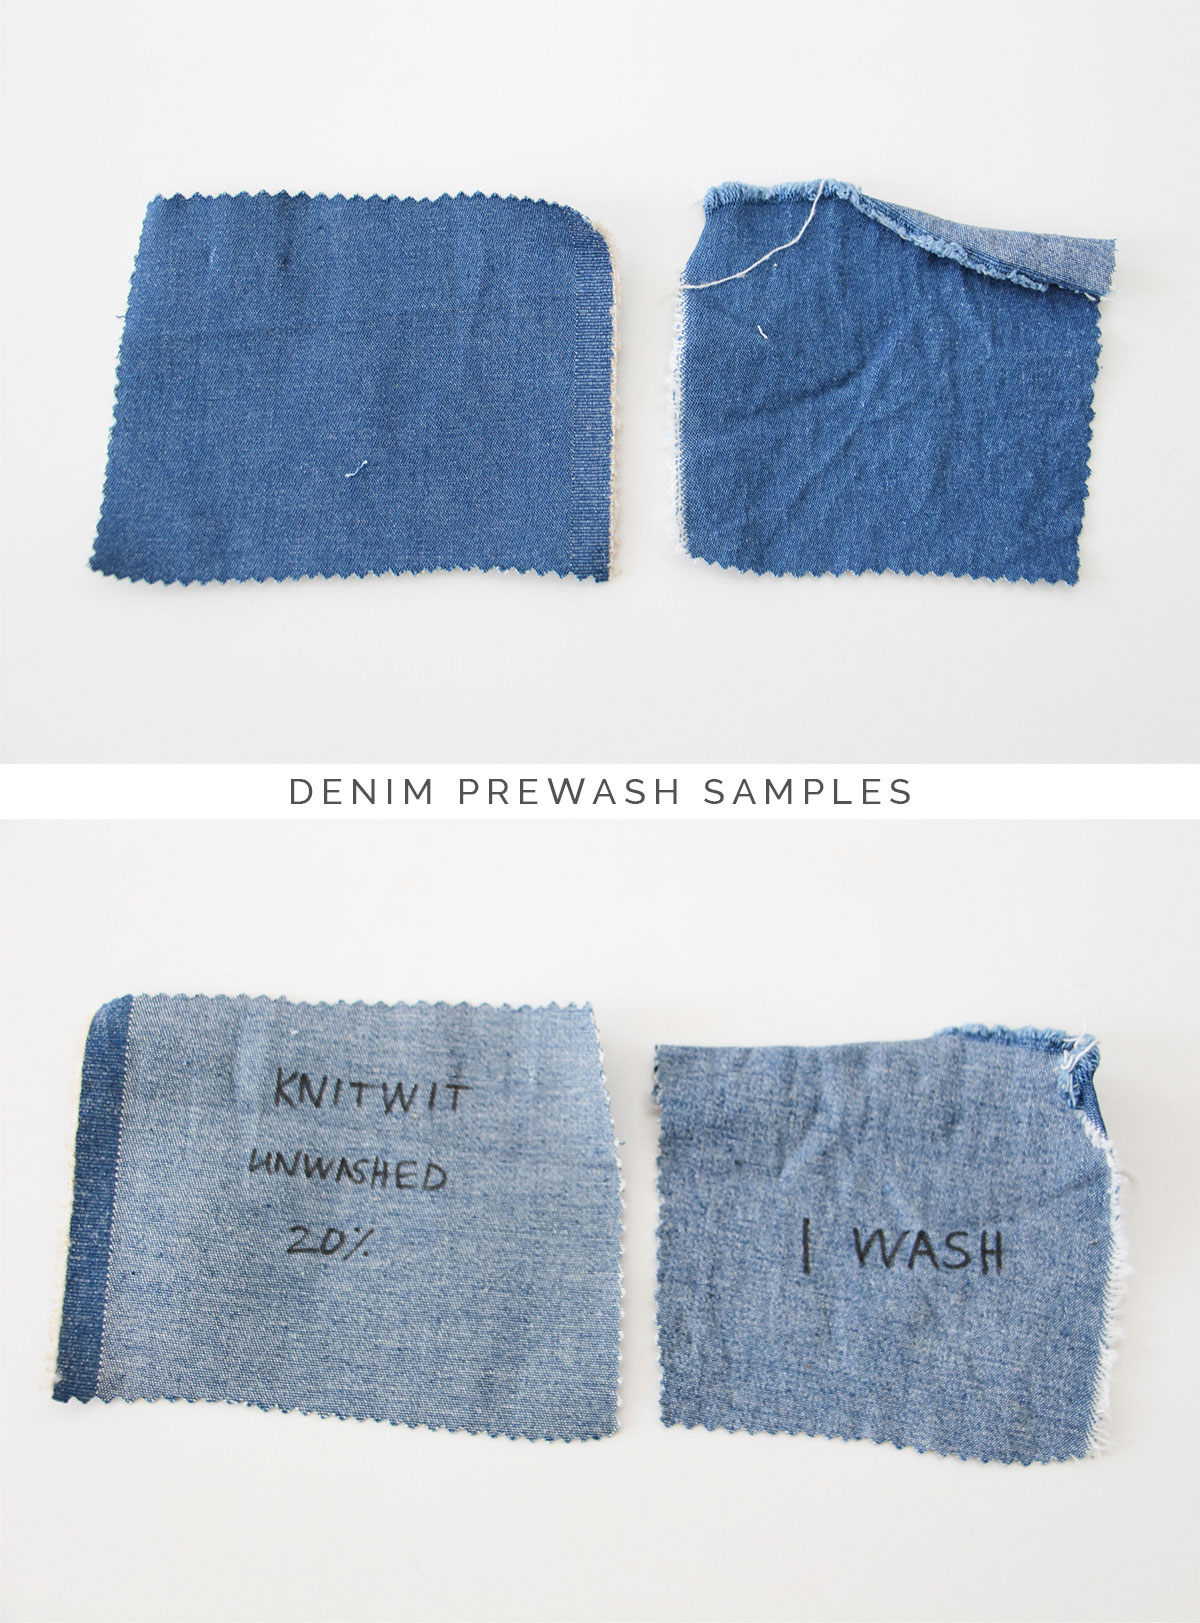 How to distress and fade denim, tutorial on Megan Nielsen Design Diary